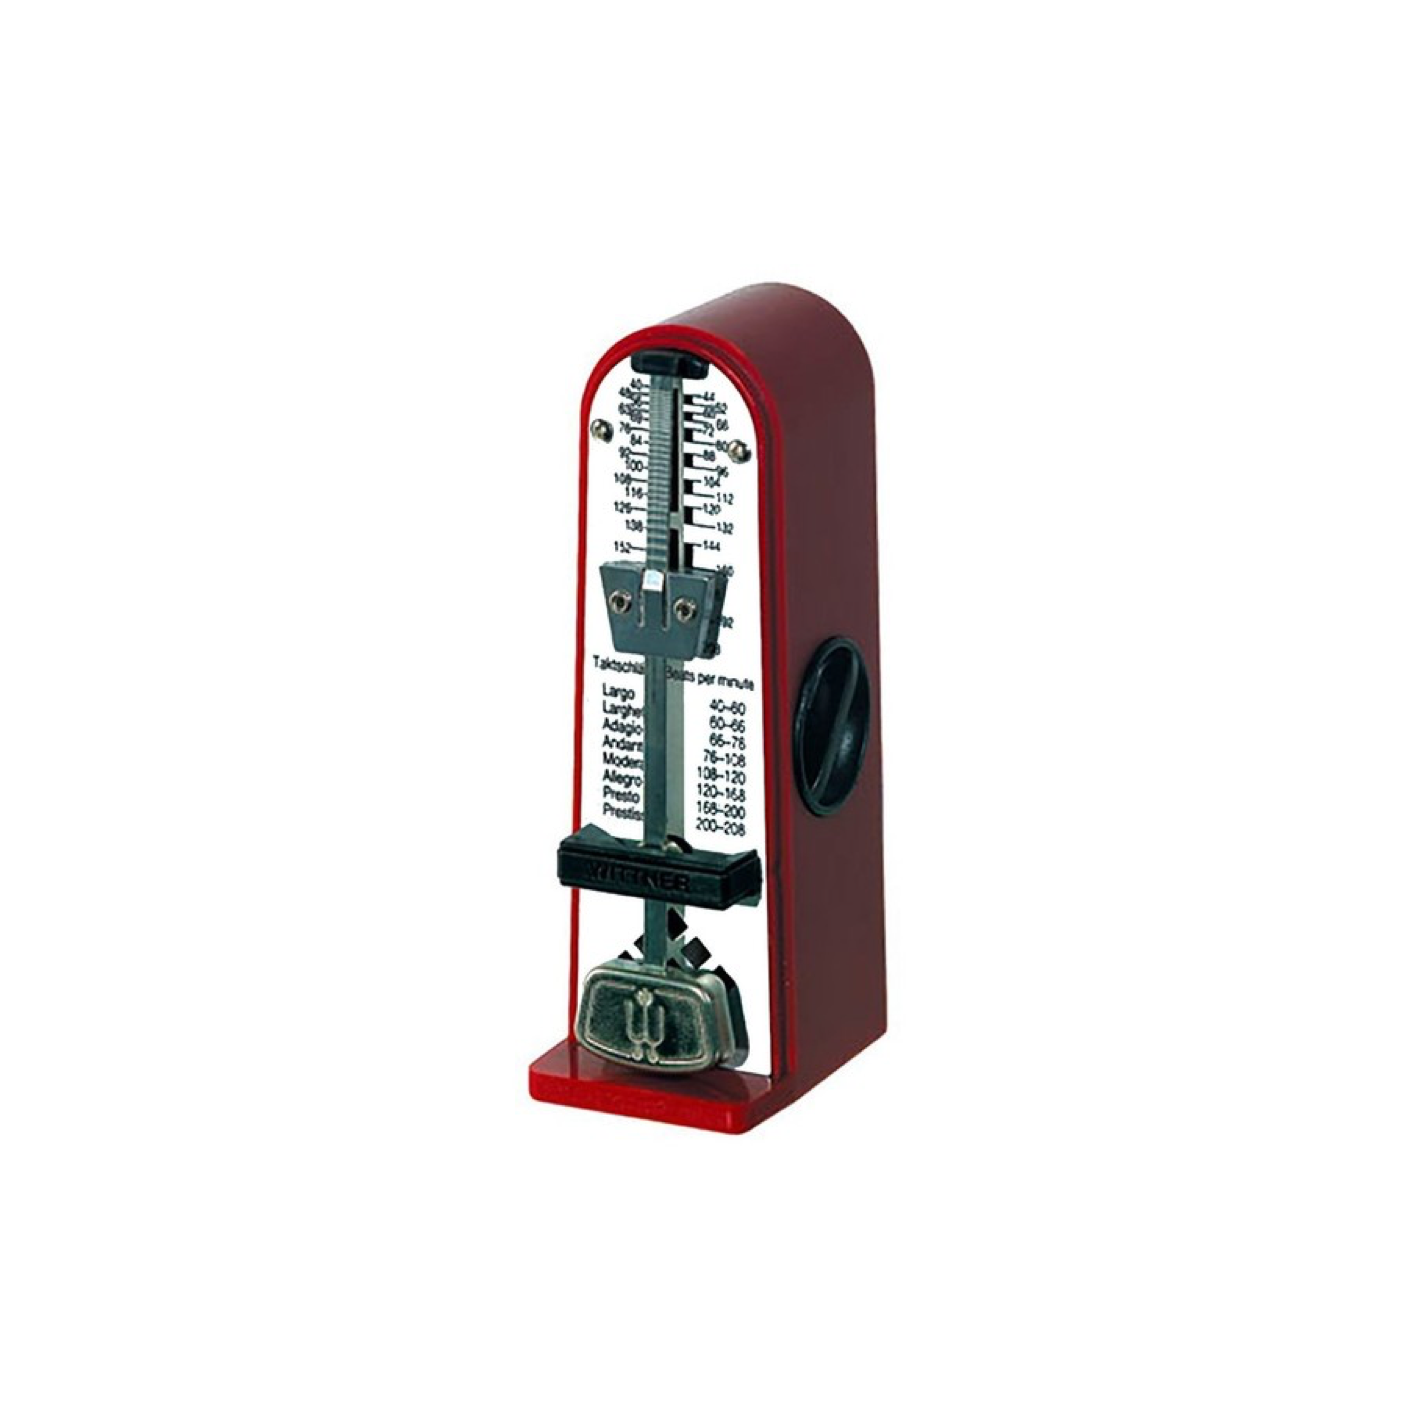 Wittner Piccolino Metronome Ruby 890141